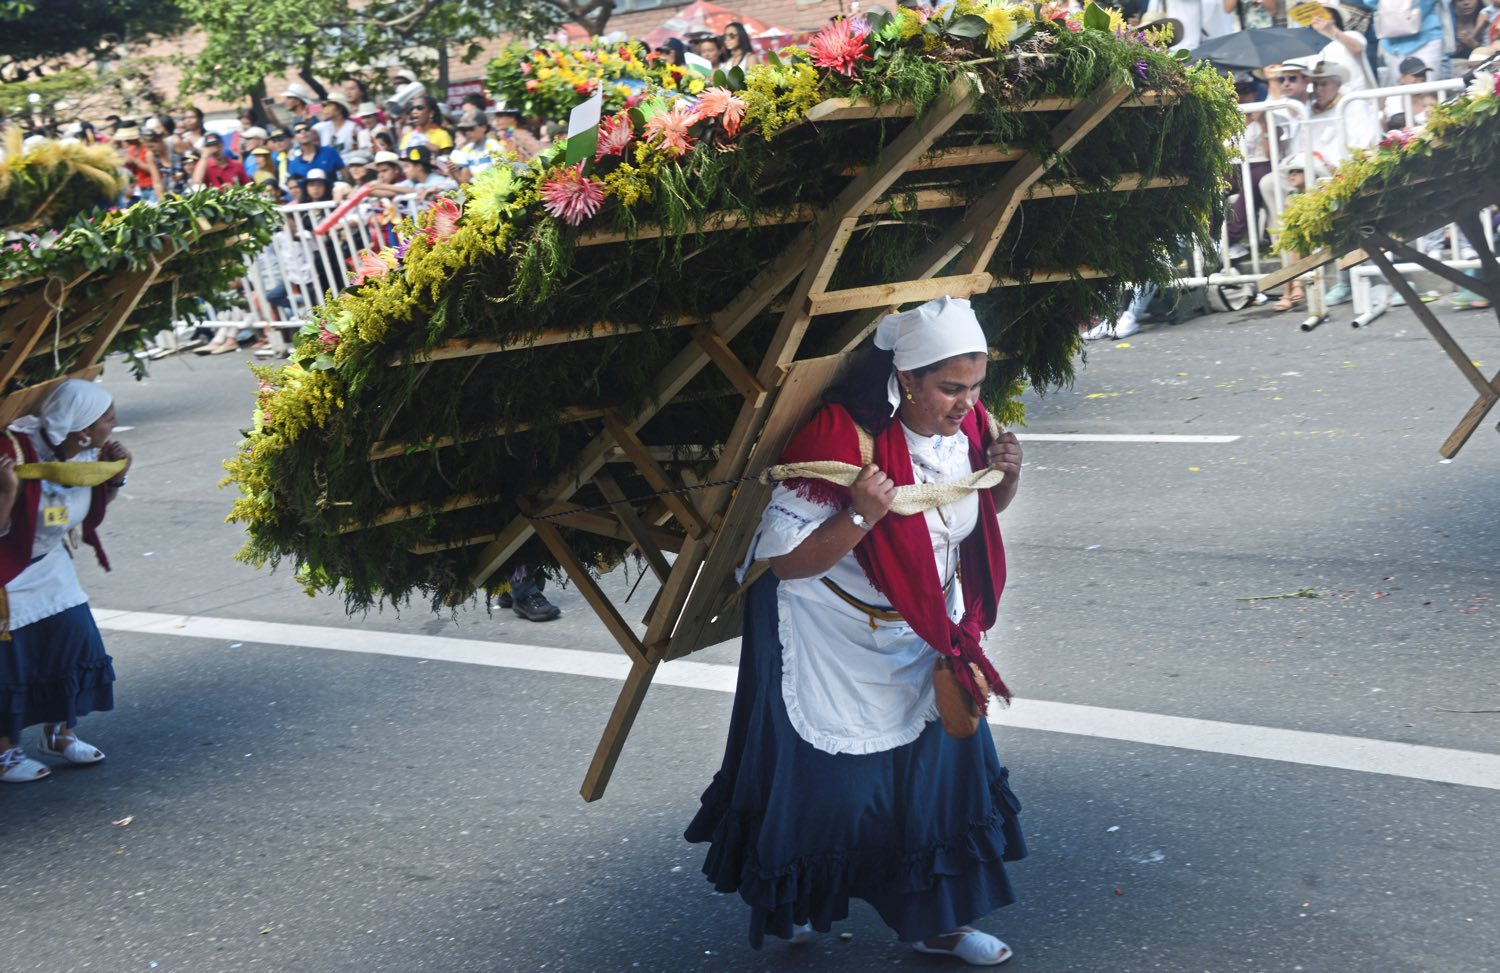 """A woman carries an elaborate flower arrangement on a wooden """"silletas"""" Monday Aug. 7, 2017, during the 60th anniversary of the flower festival in Medellin, Colombia. (Nate Guidry/Post-Gazette)"""